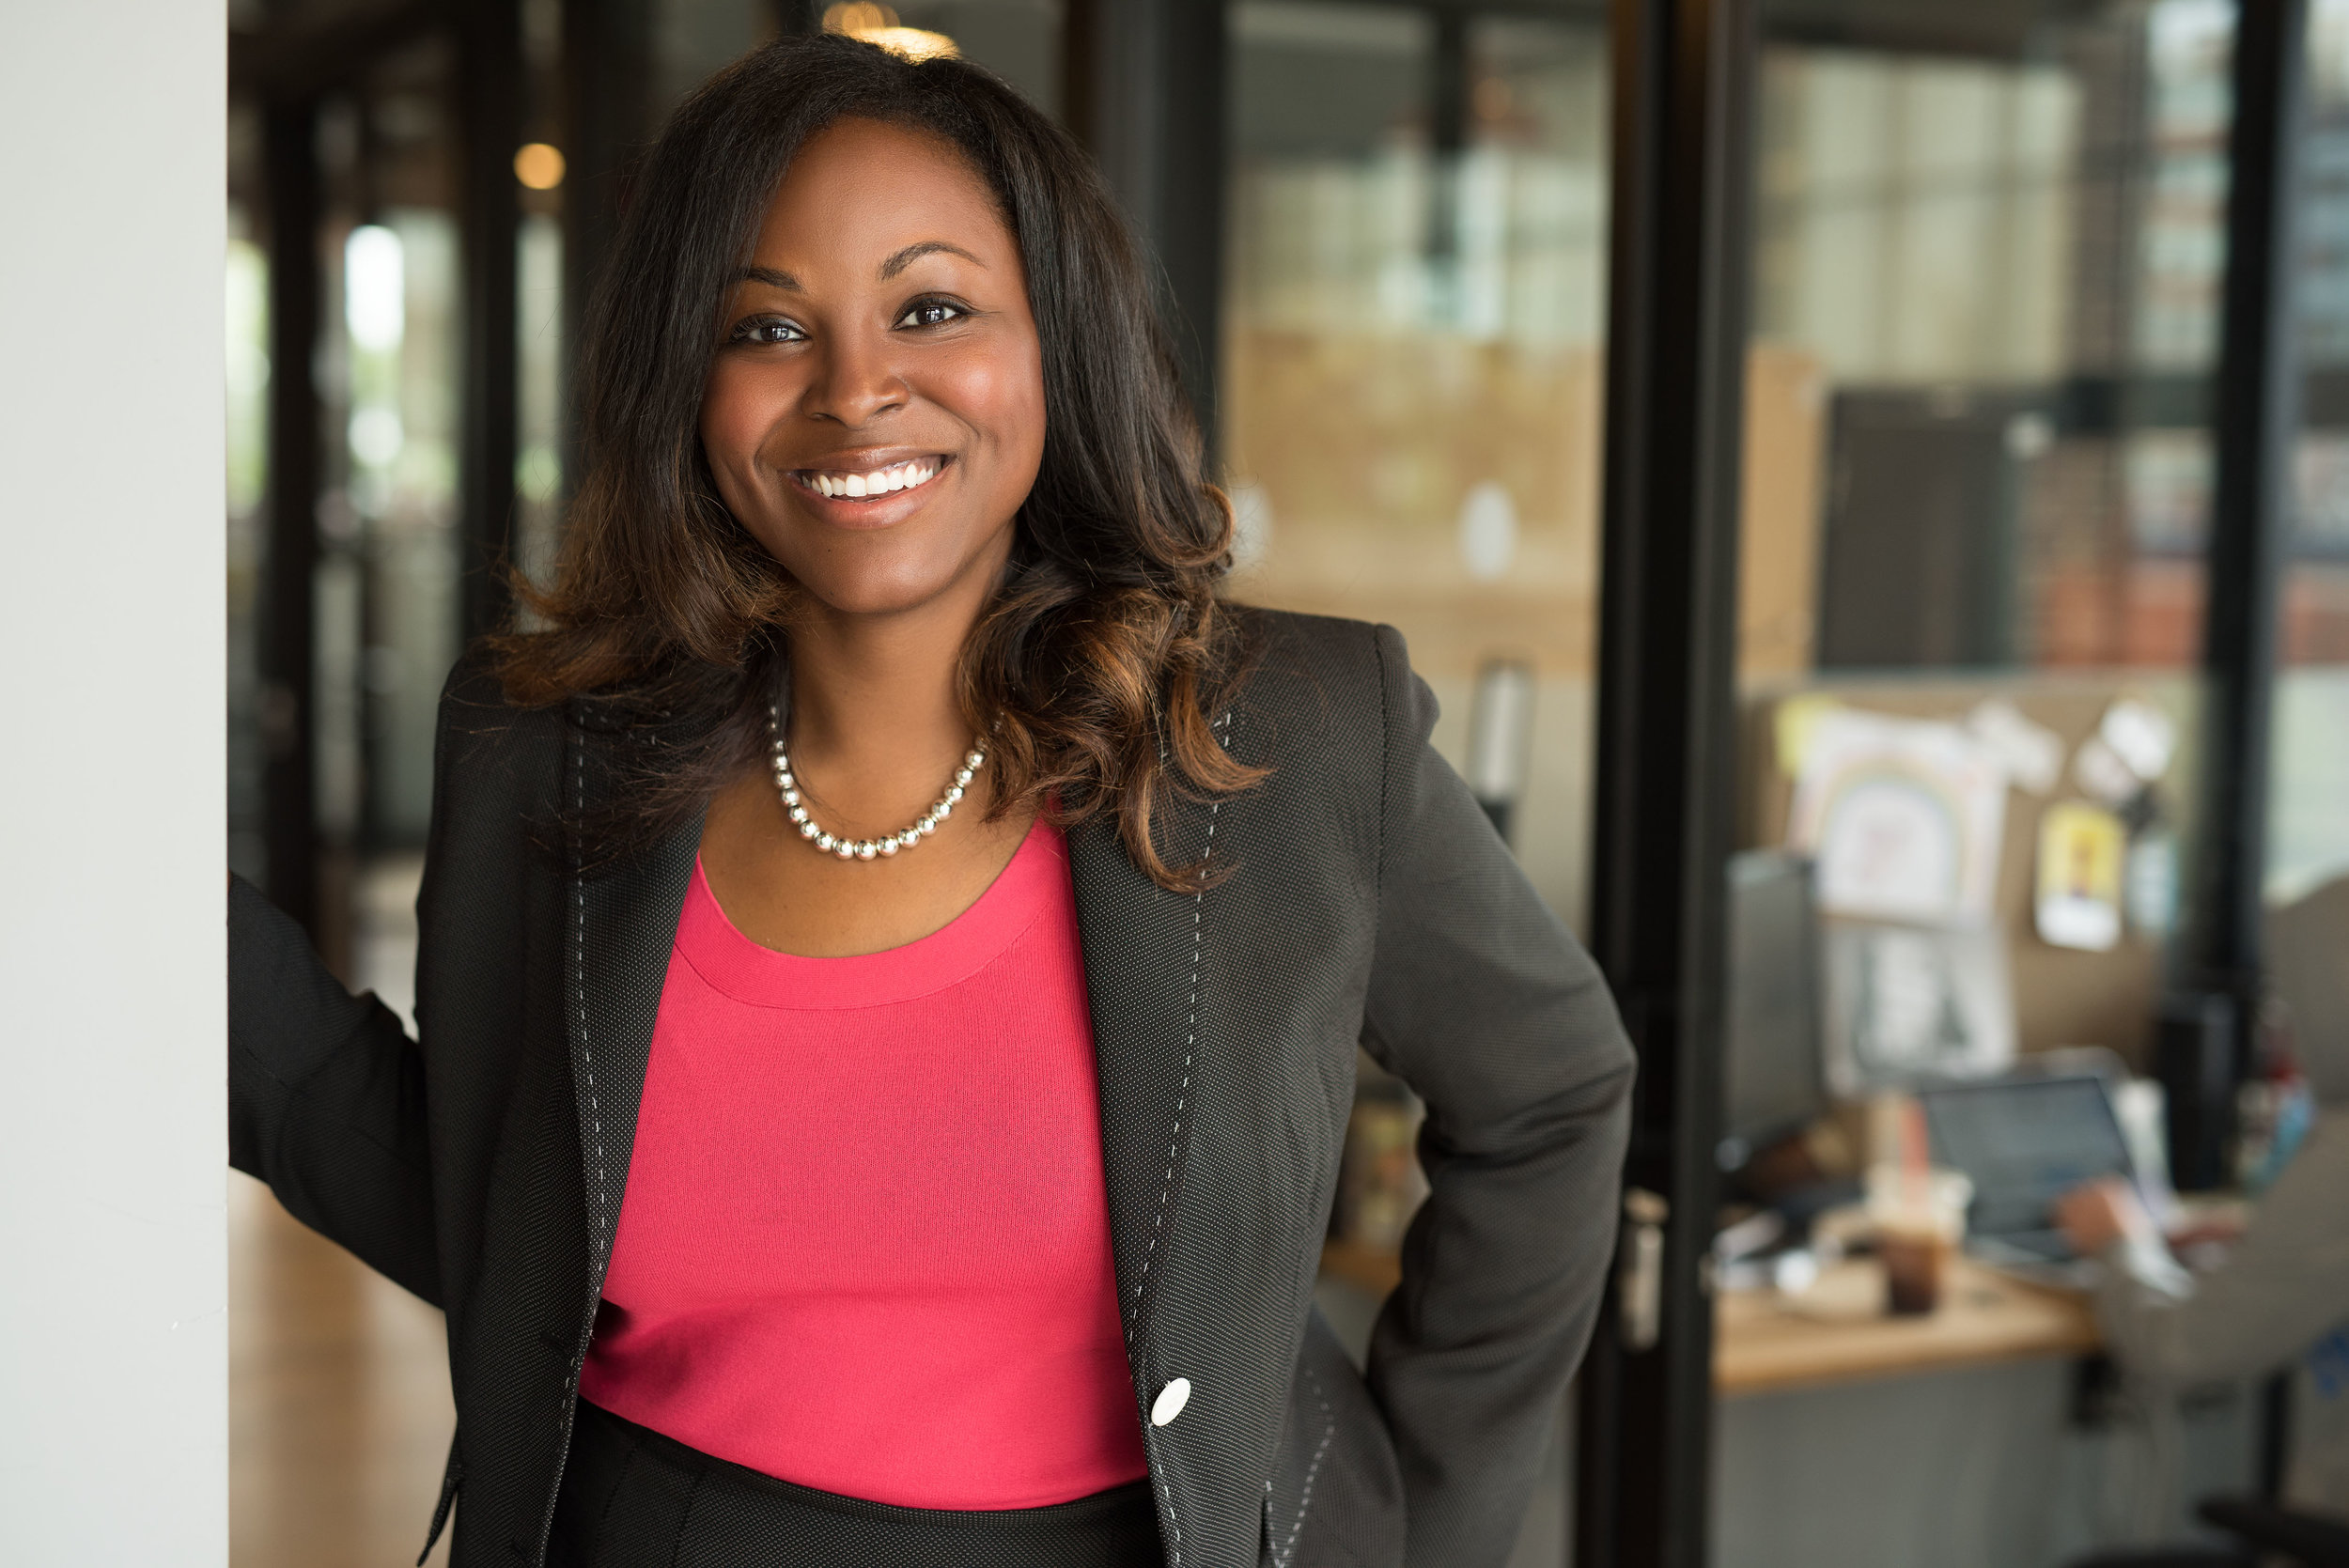 Jessica Childress, after being an Associate at a global law firm, Jessica decided to pursue her passion of writing. She is Author of the Juris Prudence book series and Founder & Managing Attorney of The Childress Firm PLLC.